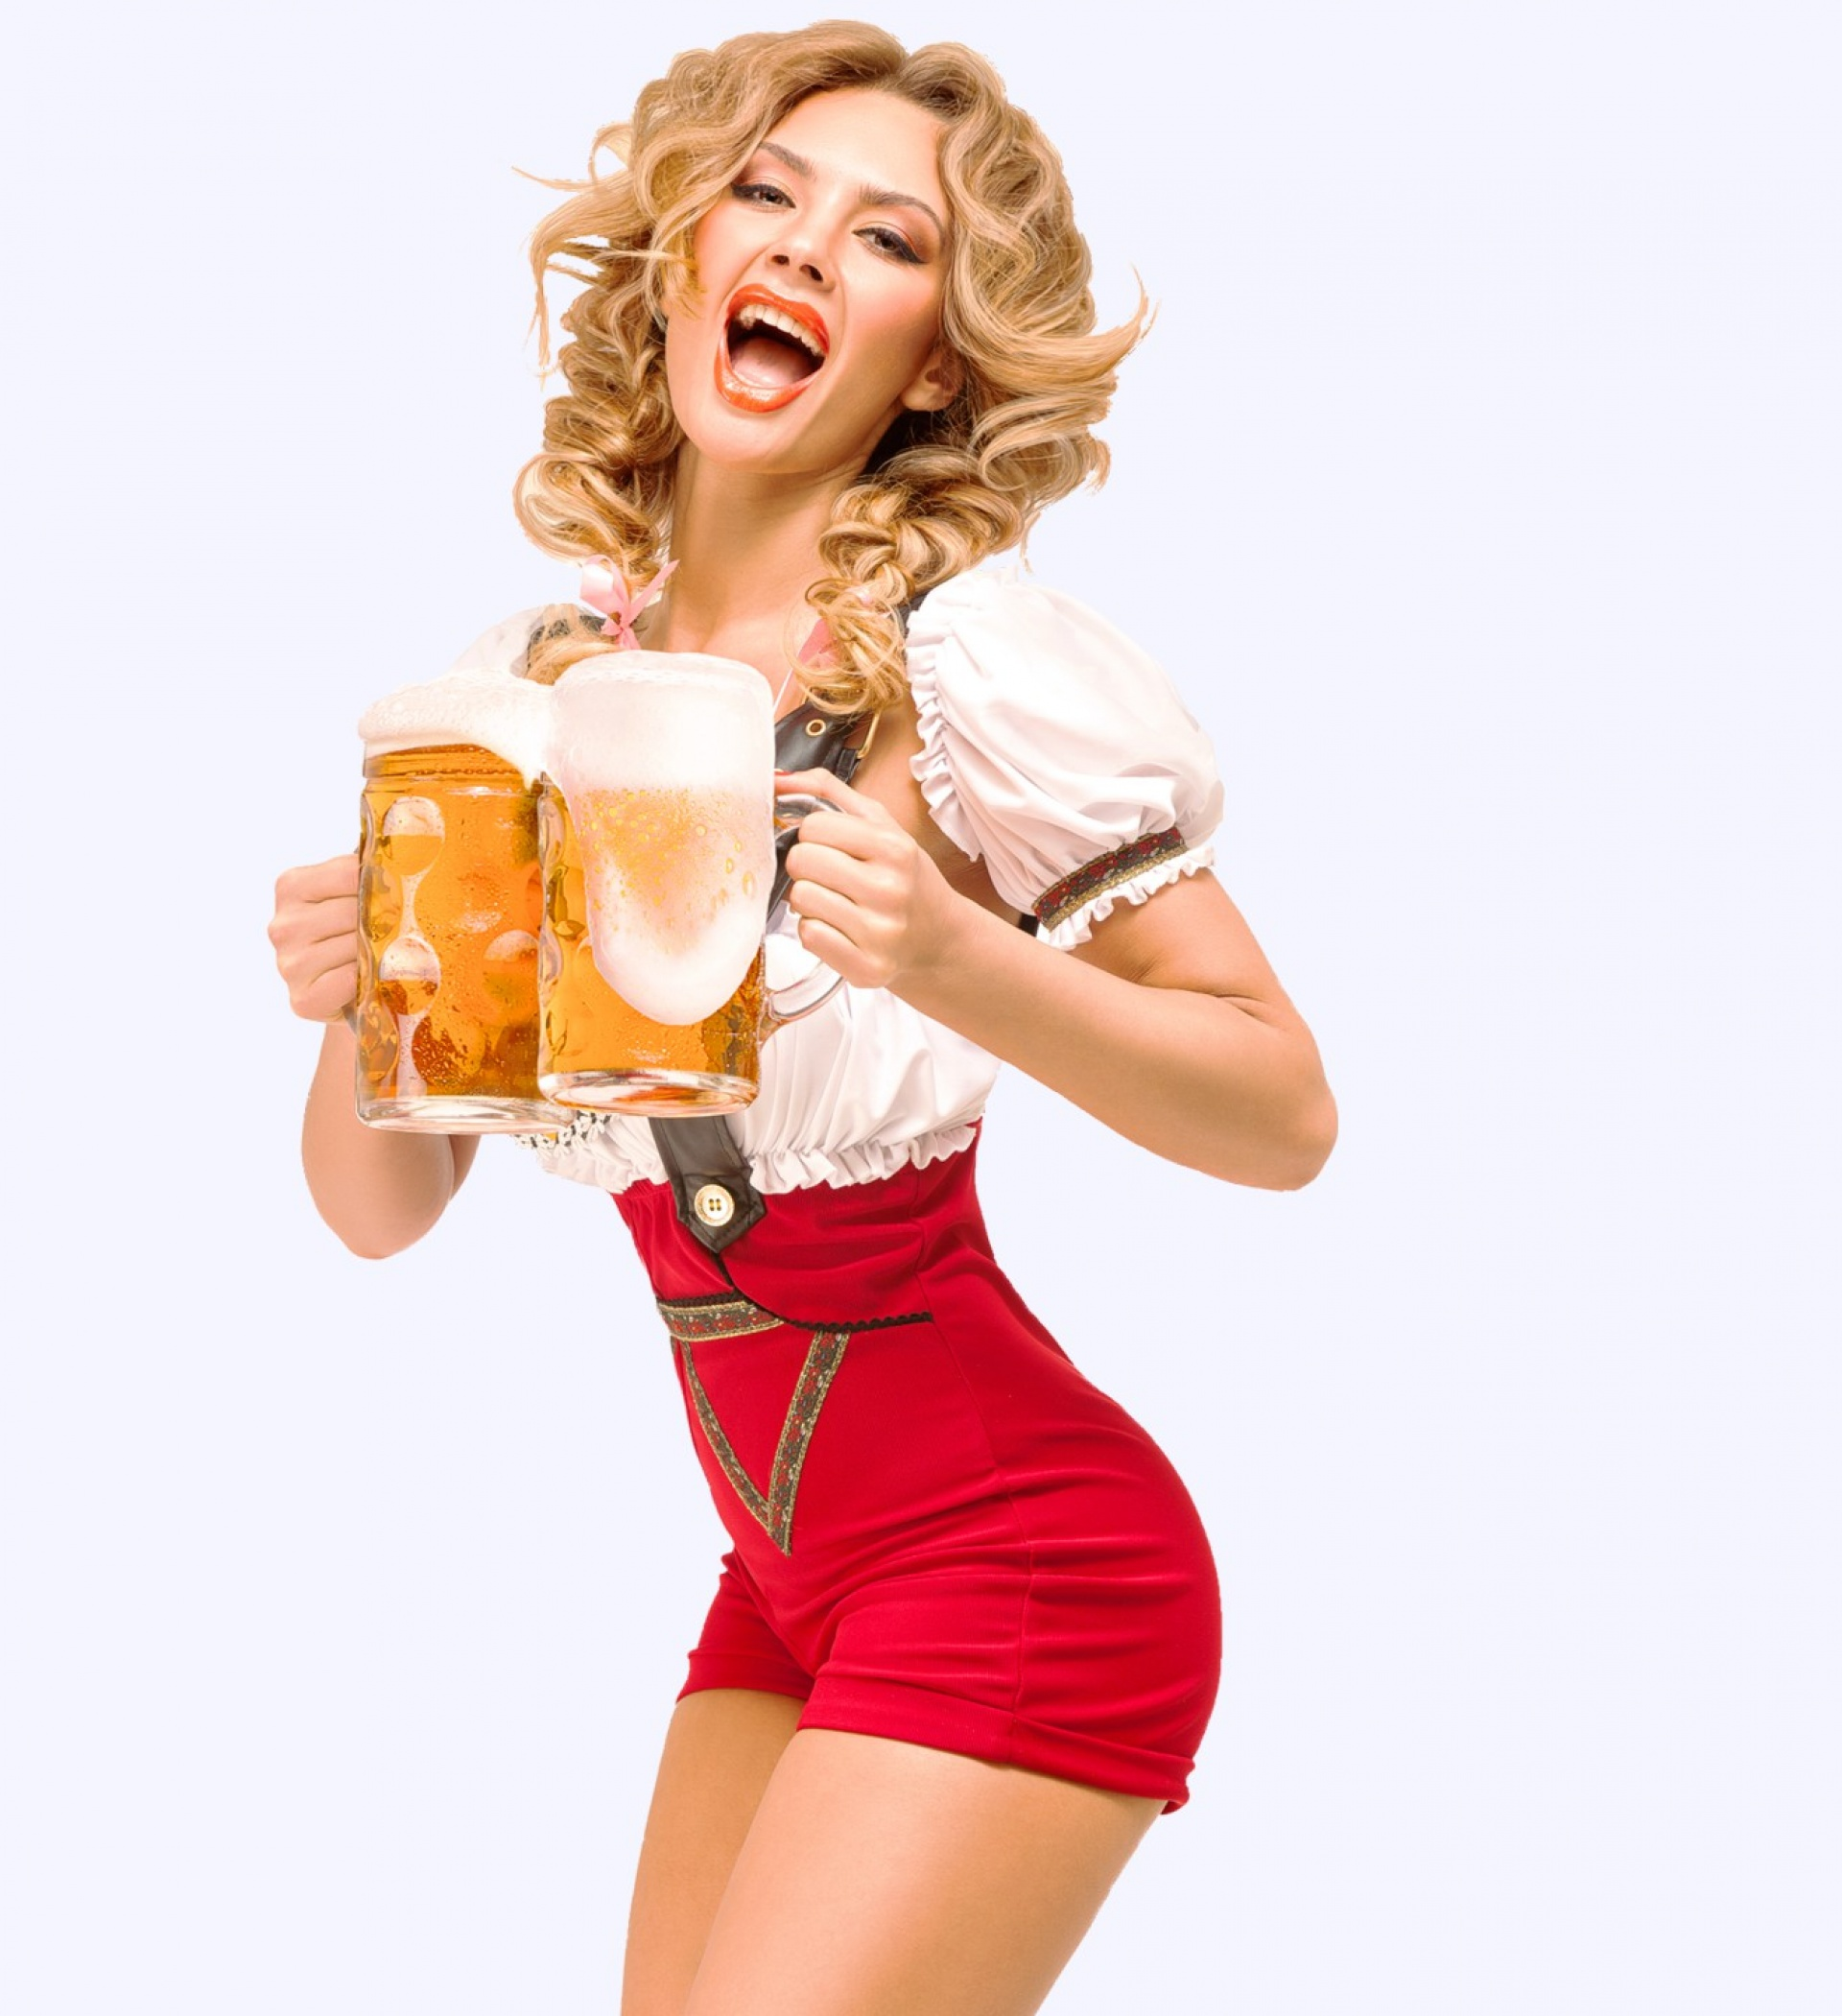 Party girl holding large beers